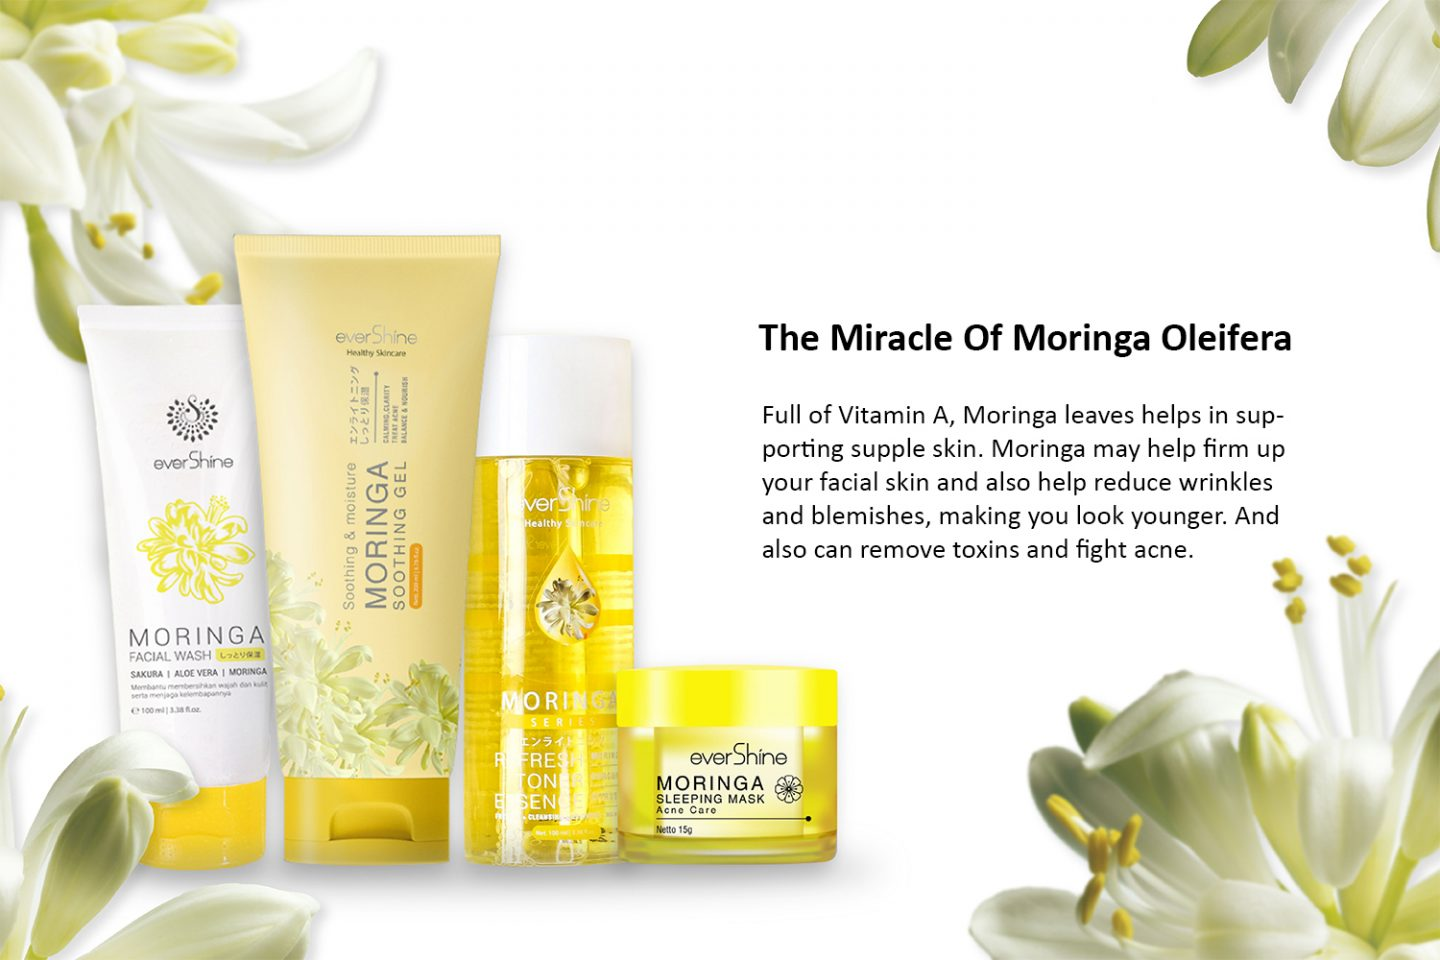 MORINGA SERIES Products by Evershine